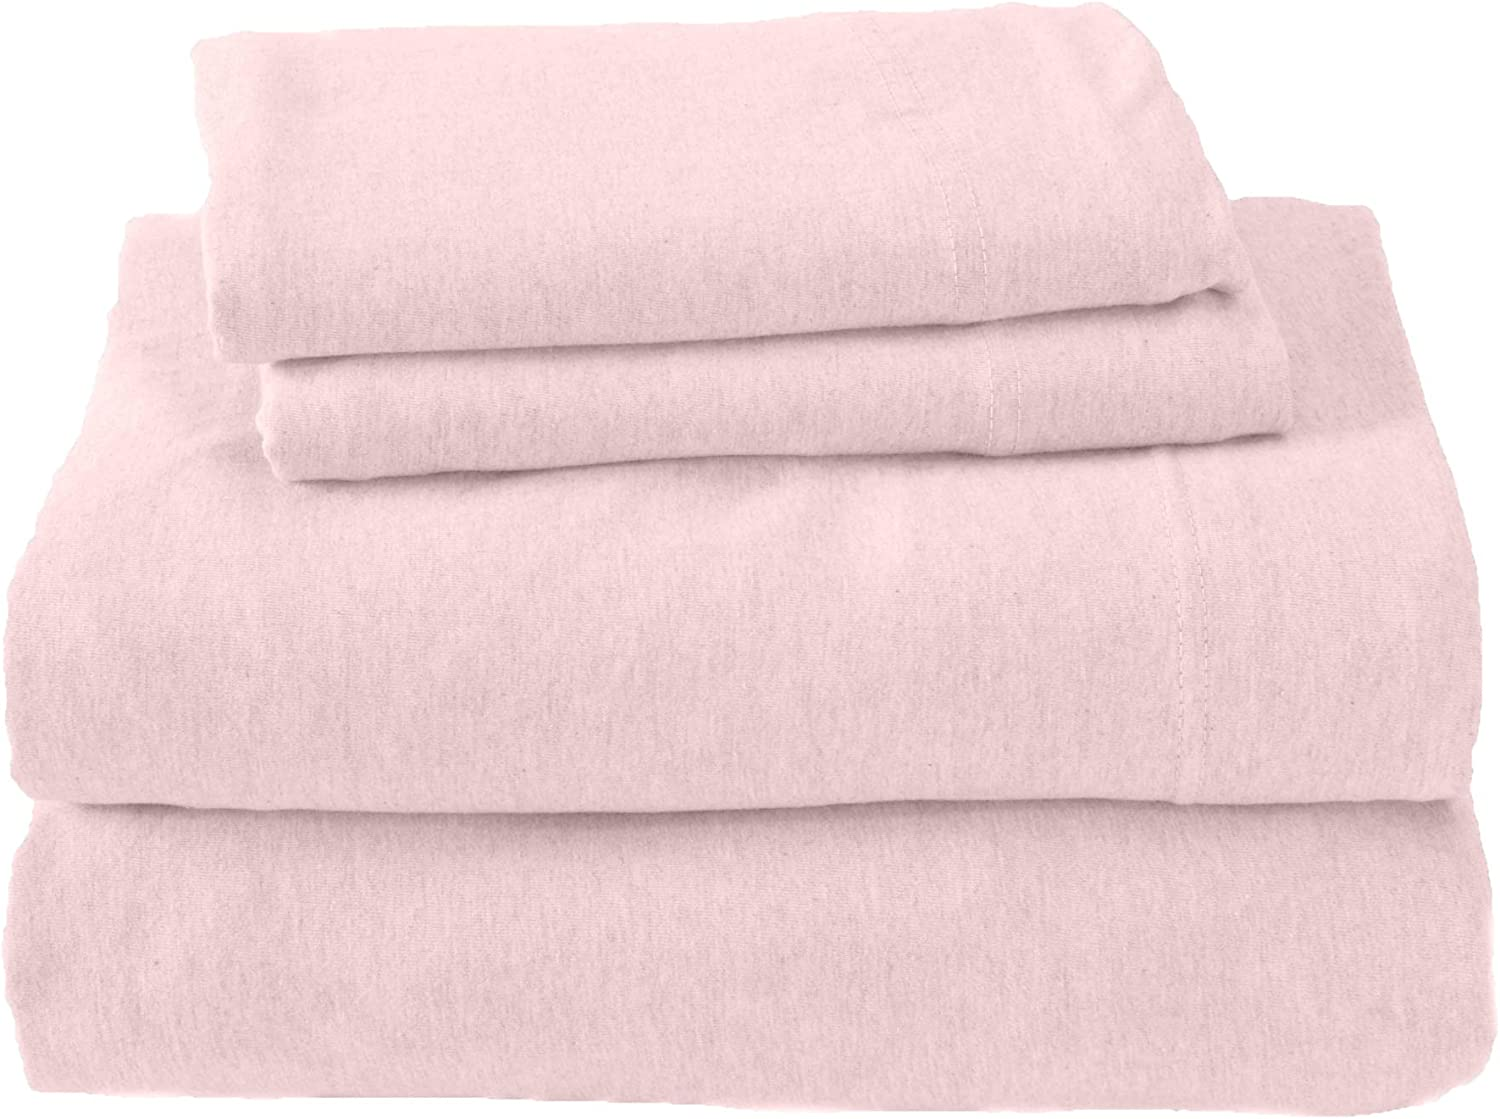 Jersey Knit Sheets. All Season, Soft, Cozy Queen Jersey Sheets. T-Shirt Sheets. Jersey Cotton Sheets. Heather Cotton Jersey Bed Sheet Set. (Queen, Pink)